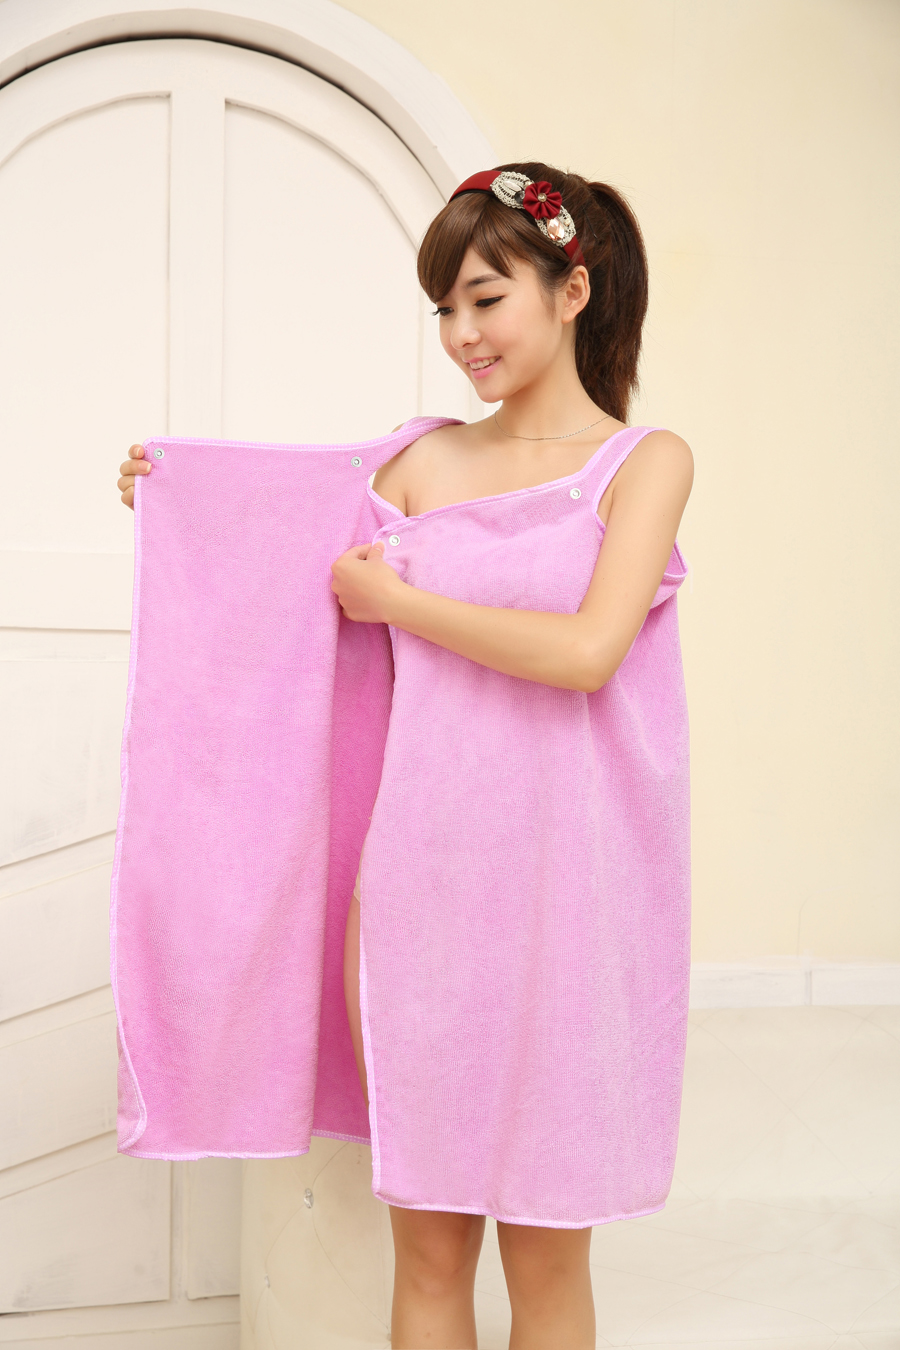 Honana BX-699 Women Microfiber Soft Cozy Beach Bath Towel Able Wear Sexy Hot Spas Bathrobe Skirt